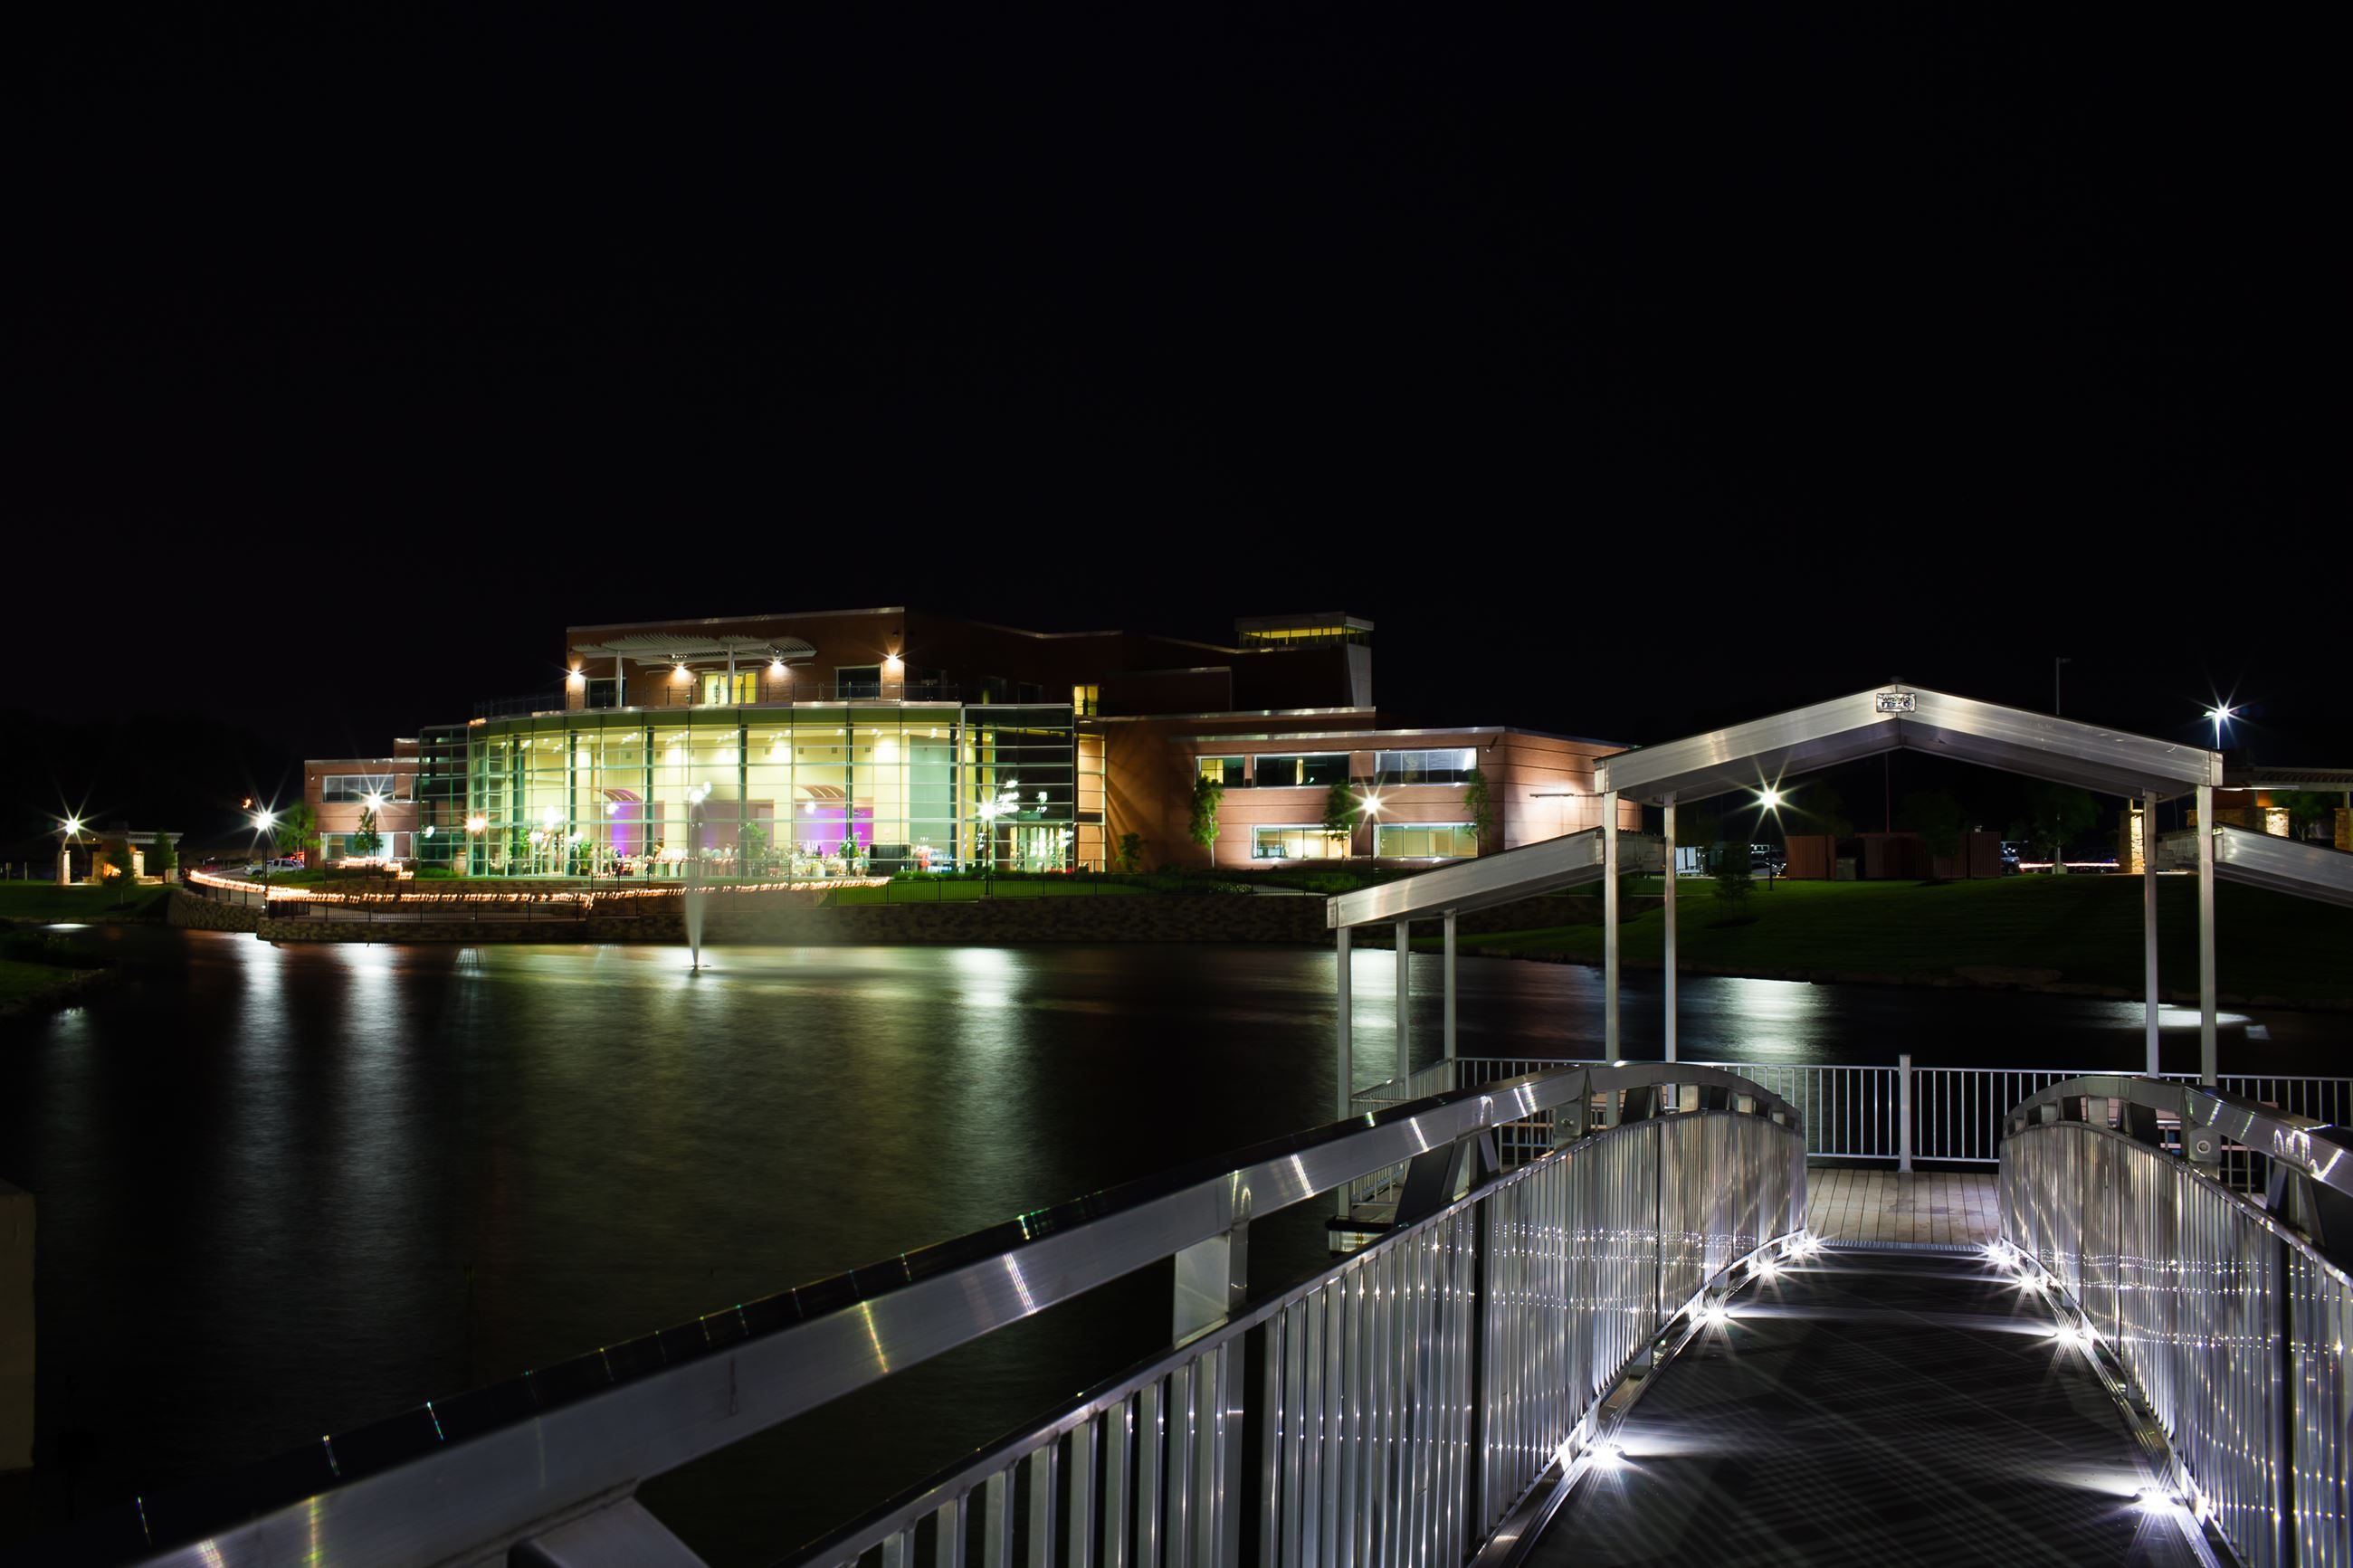 outside of conference center, pond, and dock at night